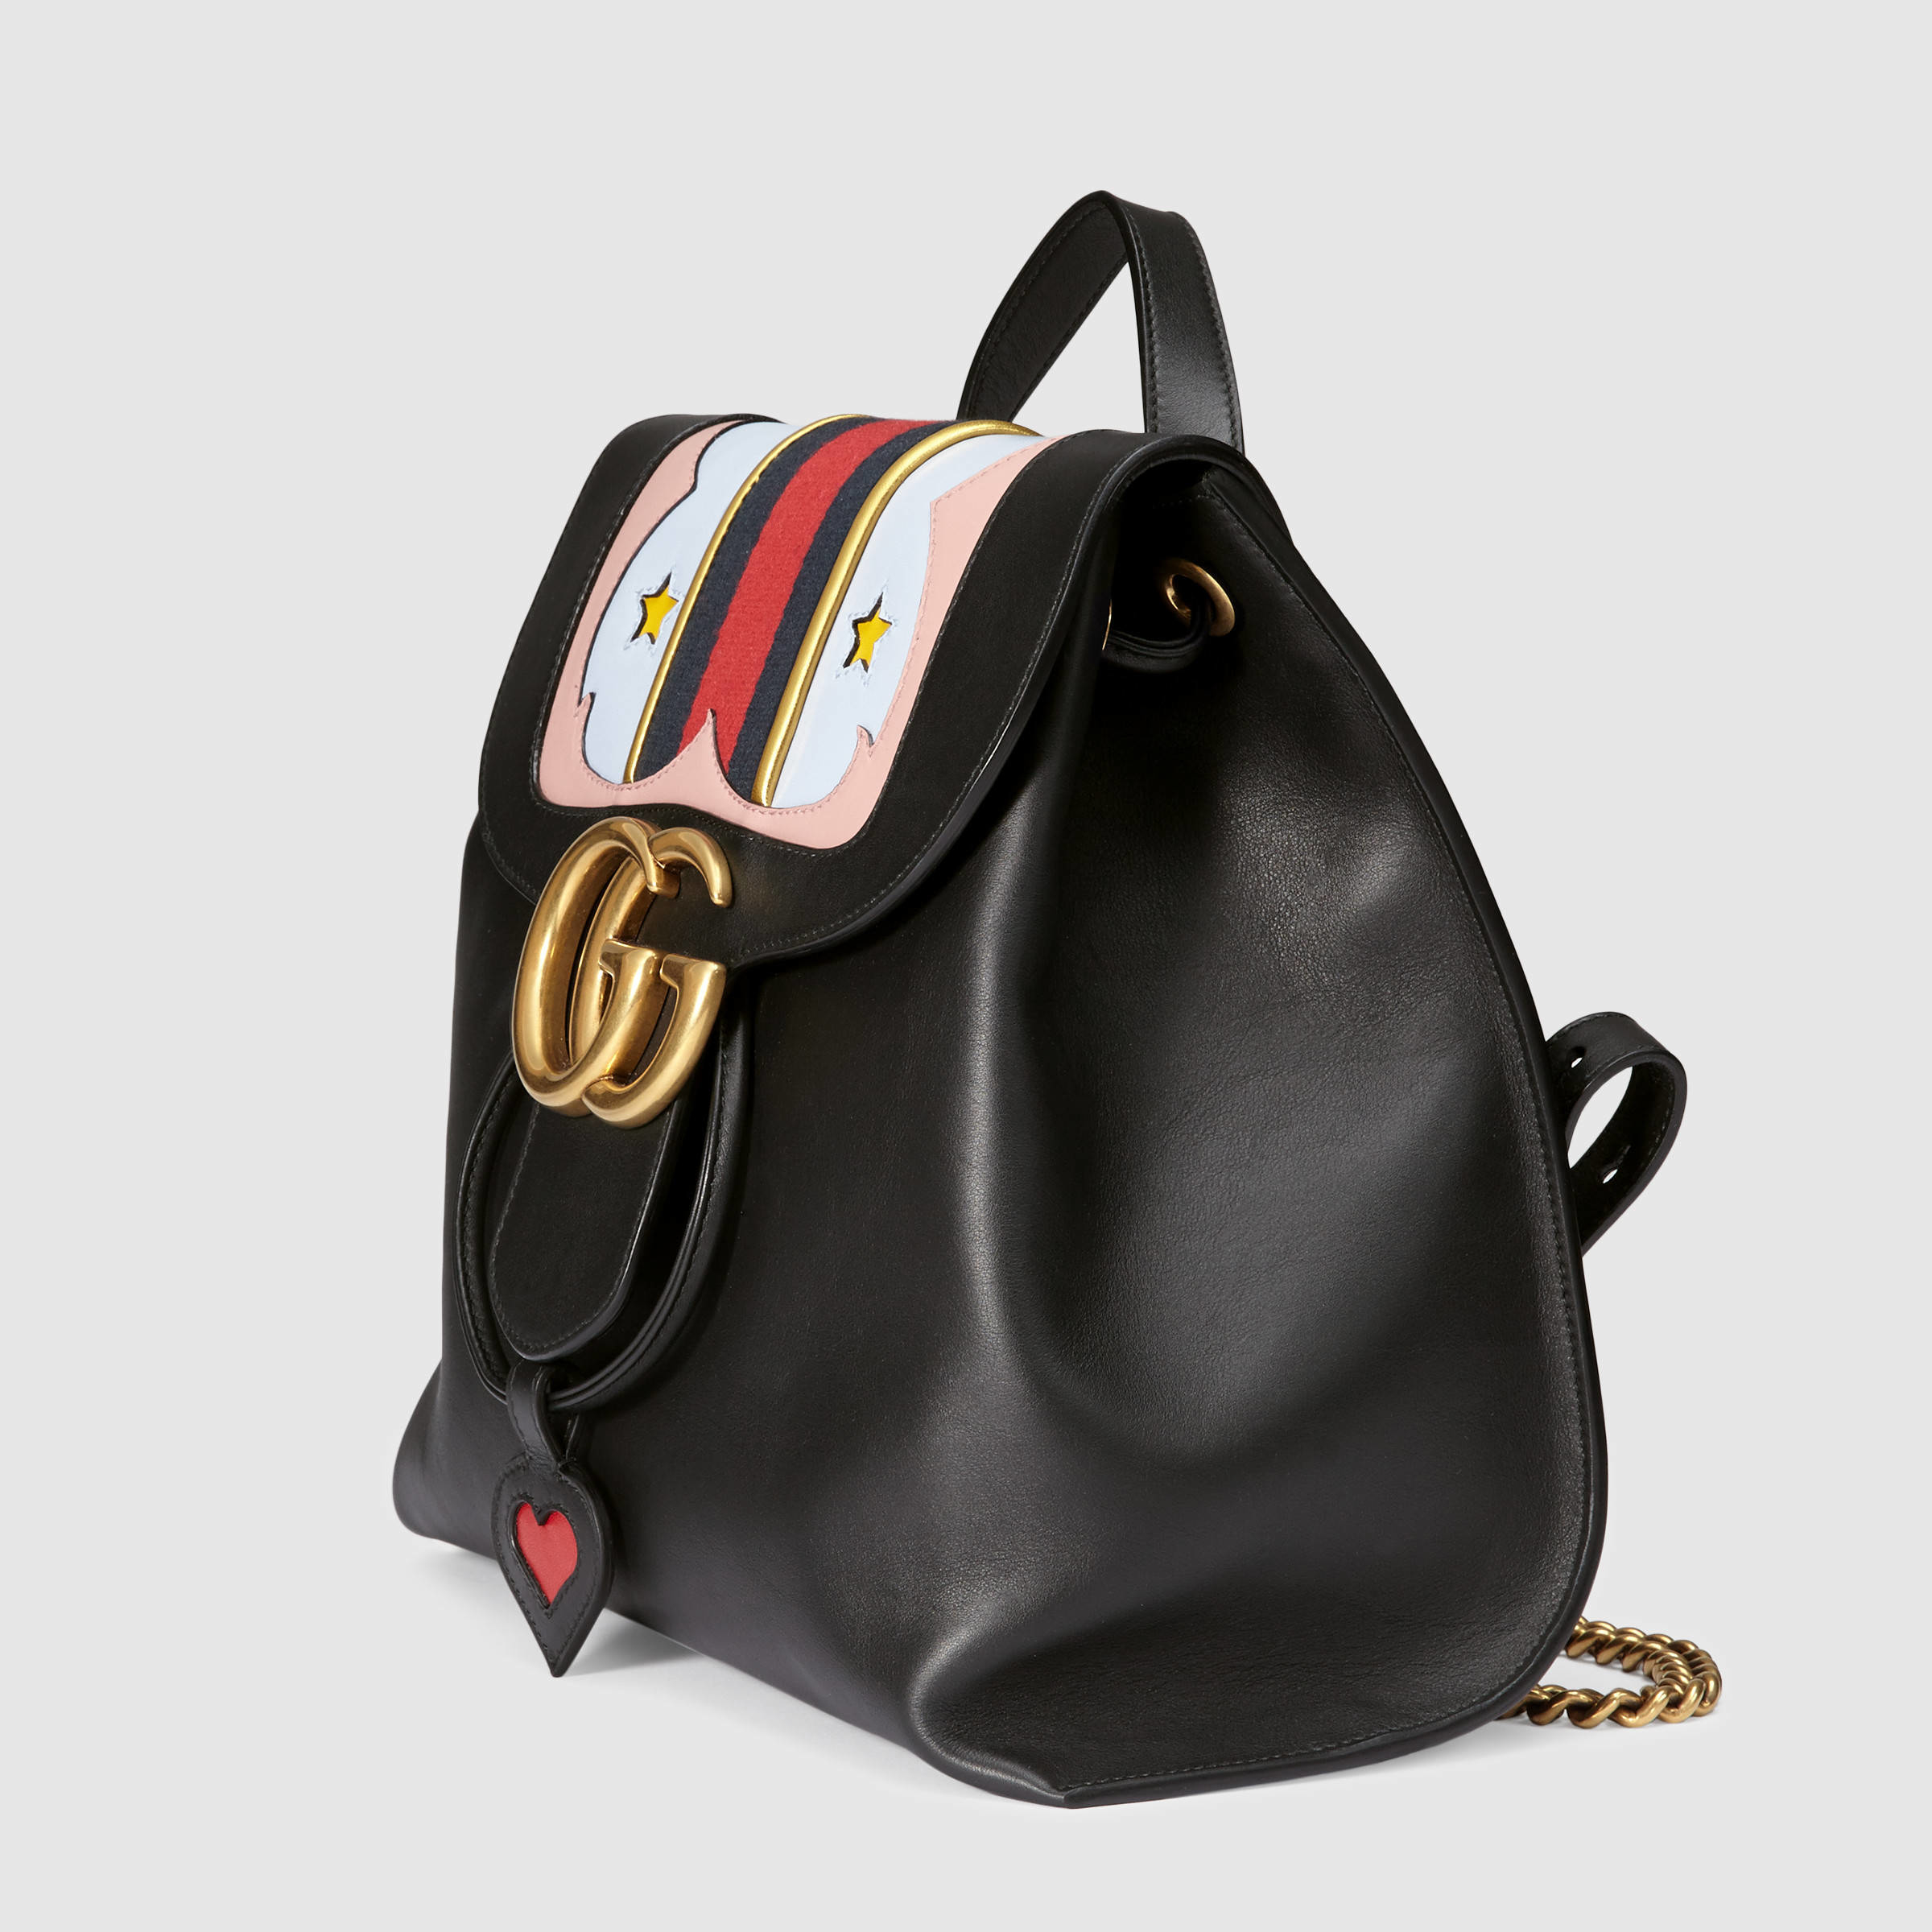 b465b74b83878f Gucci GG Marmont Leather Backpack in Black - Lyst